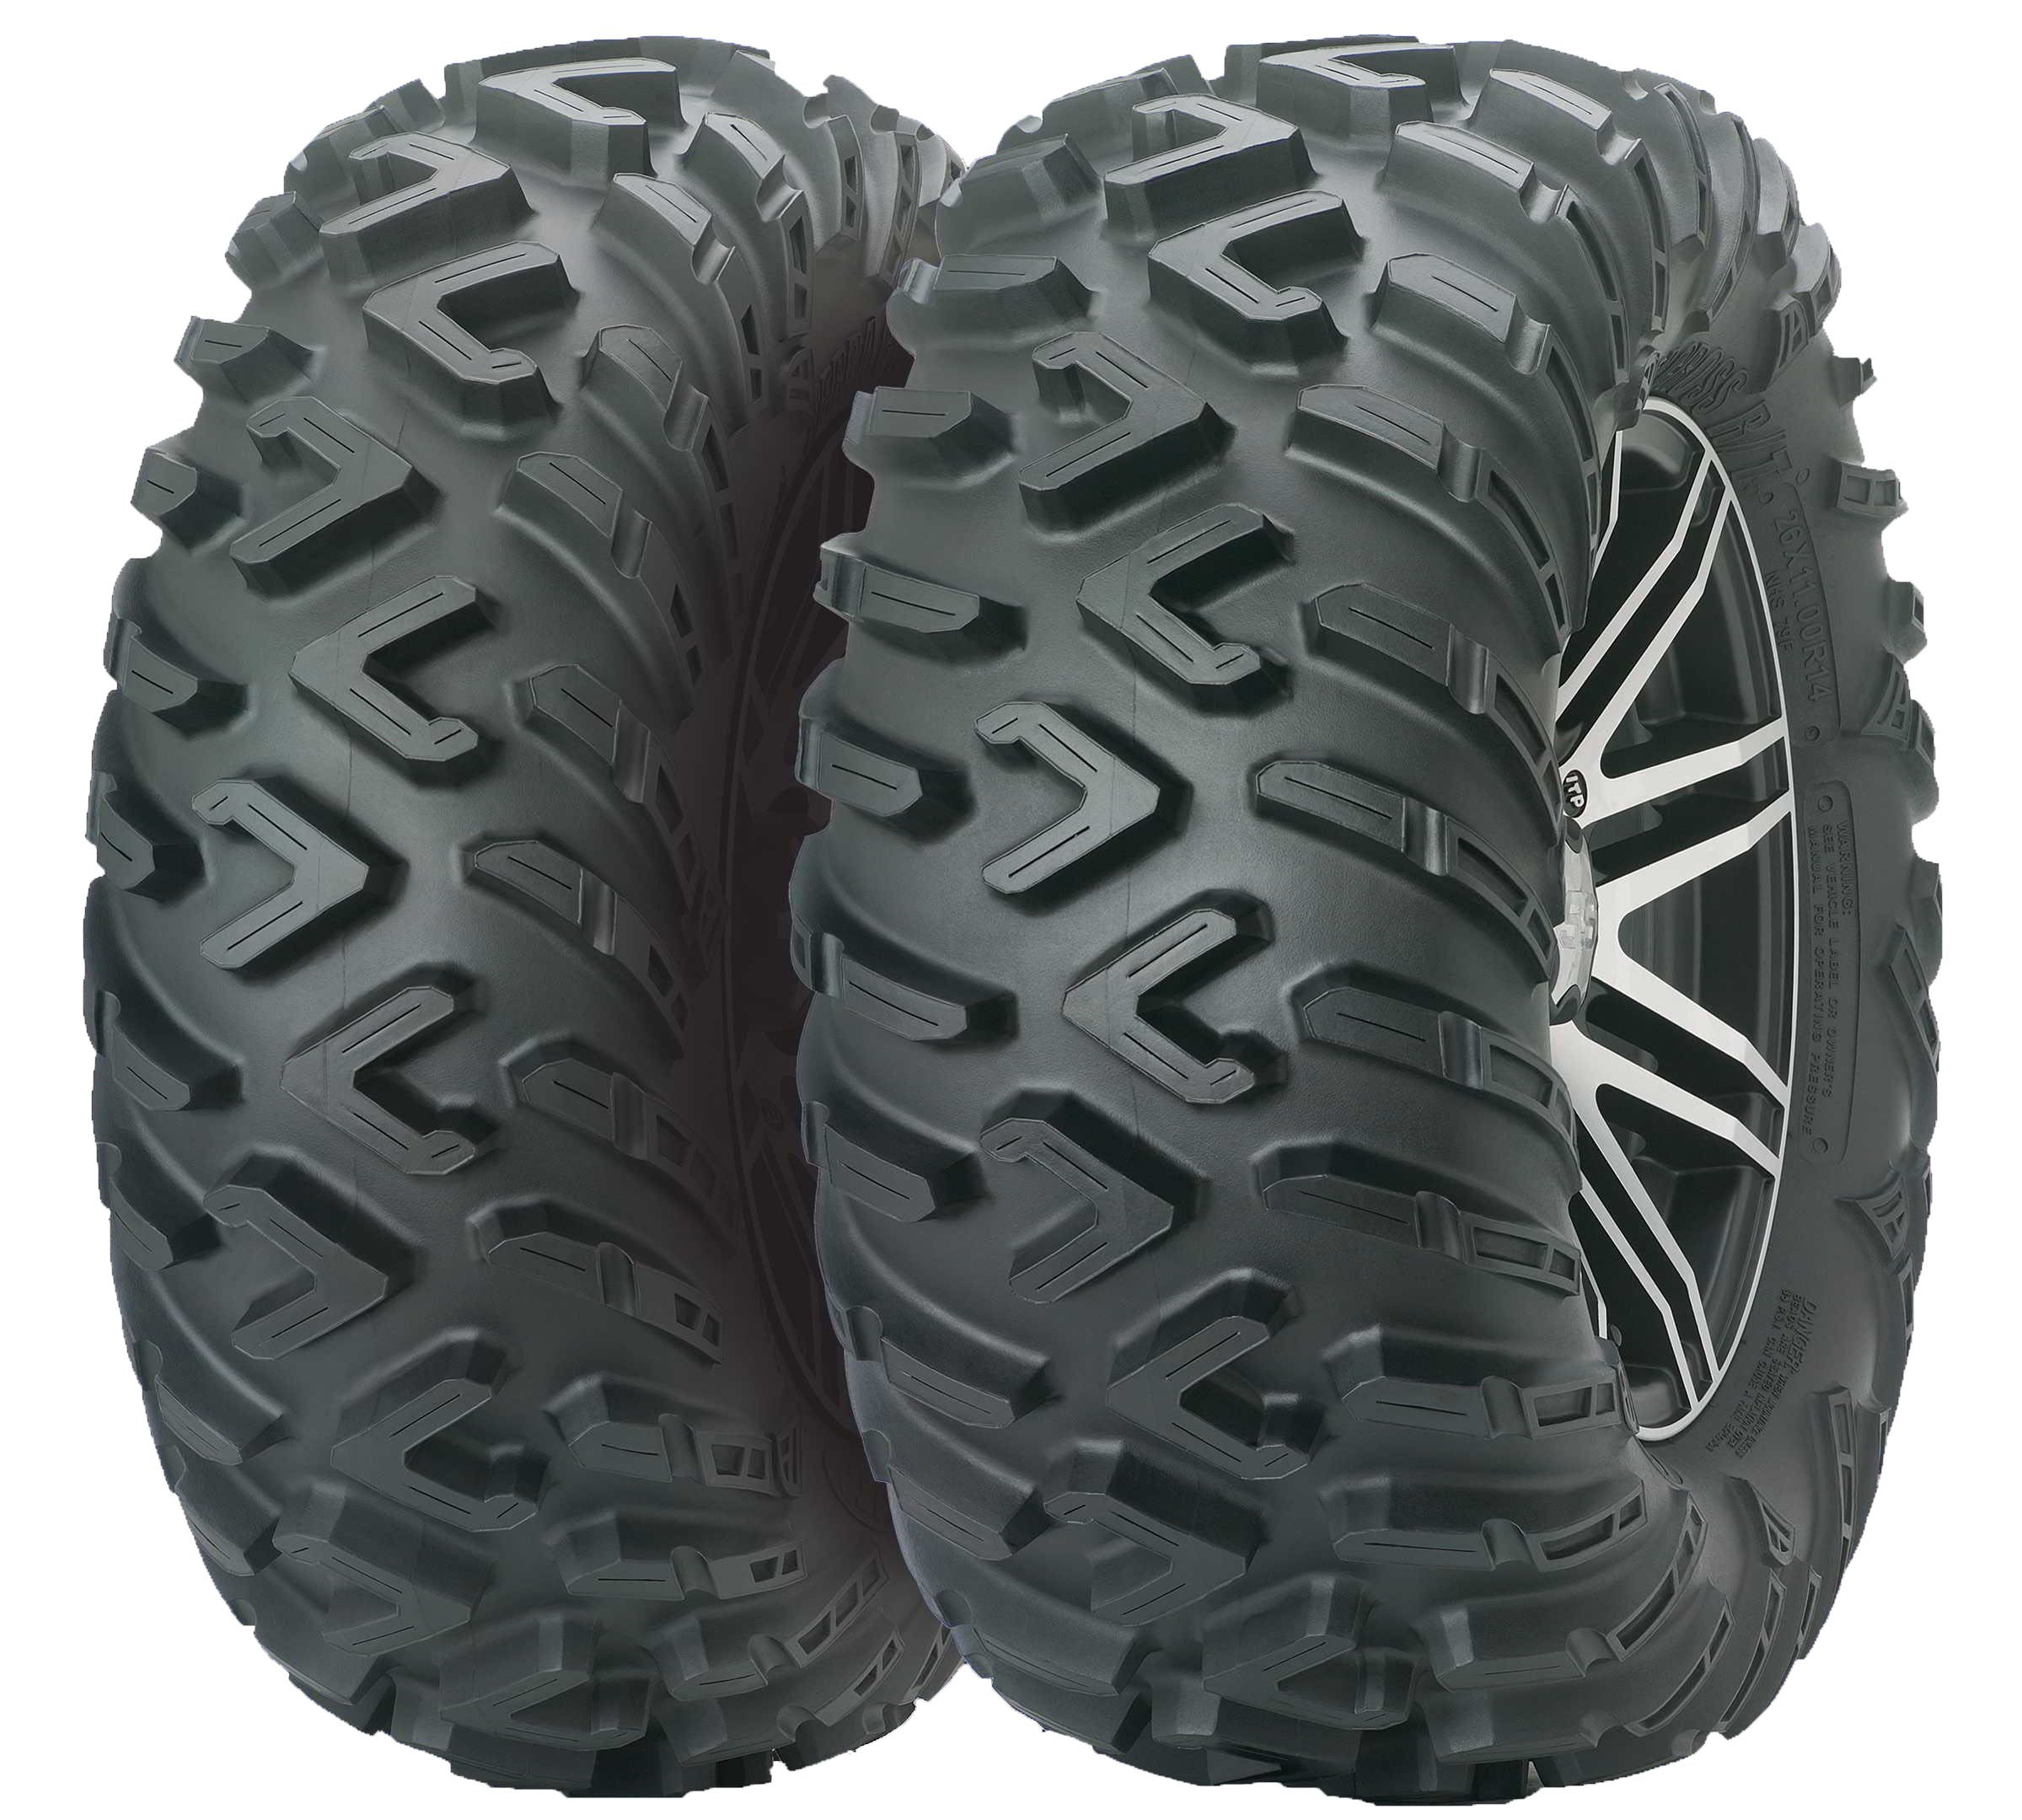 ITP TerraCross R/T Mud Terrain ATV Tire 25x8R12